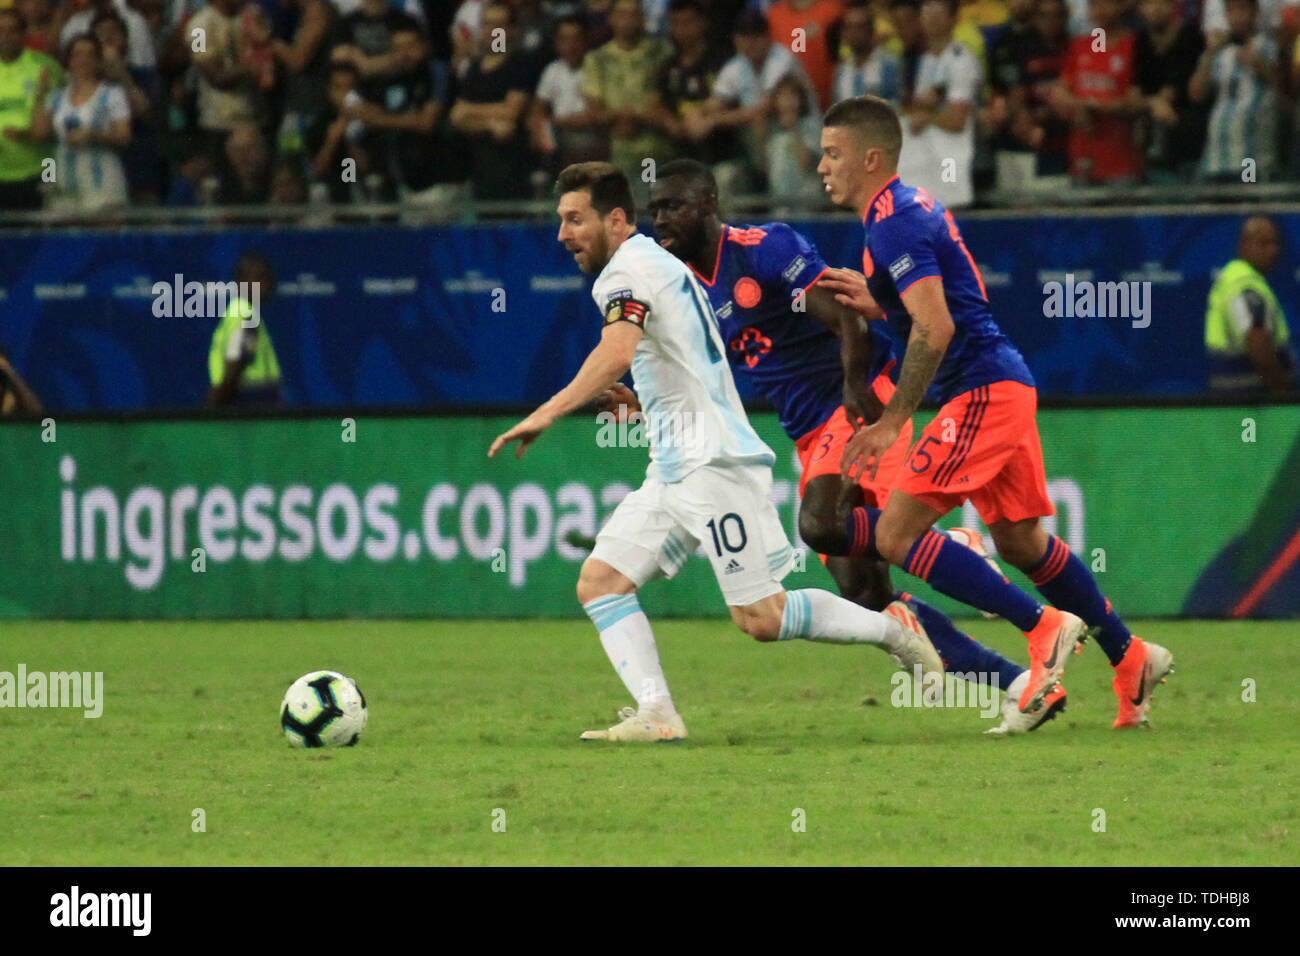 Salvador, Brazil. 15th June, 2019. Messi during match between Argentina and Colombia, game 03, valid for the group phase of Copa América 2019, held this Saturday, 15, at the Arena Fonte Nova in Salvador, BA. Credit: Mauro Akiin Nassor/FotoArena/Alamy Live News Stock Photo